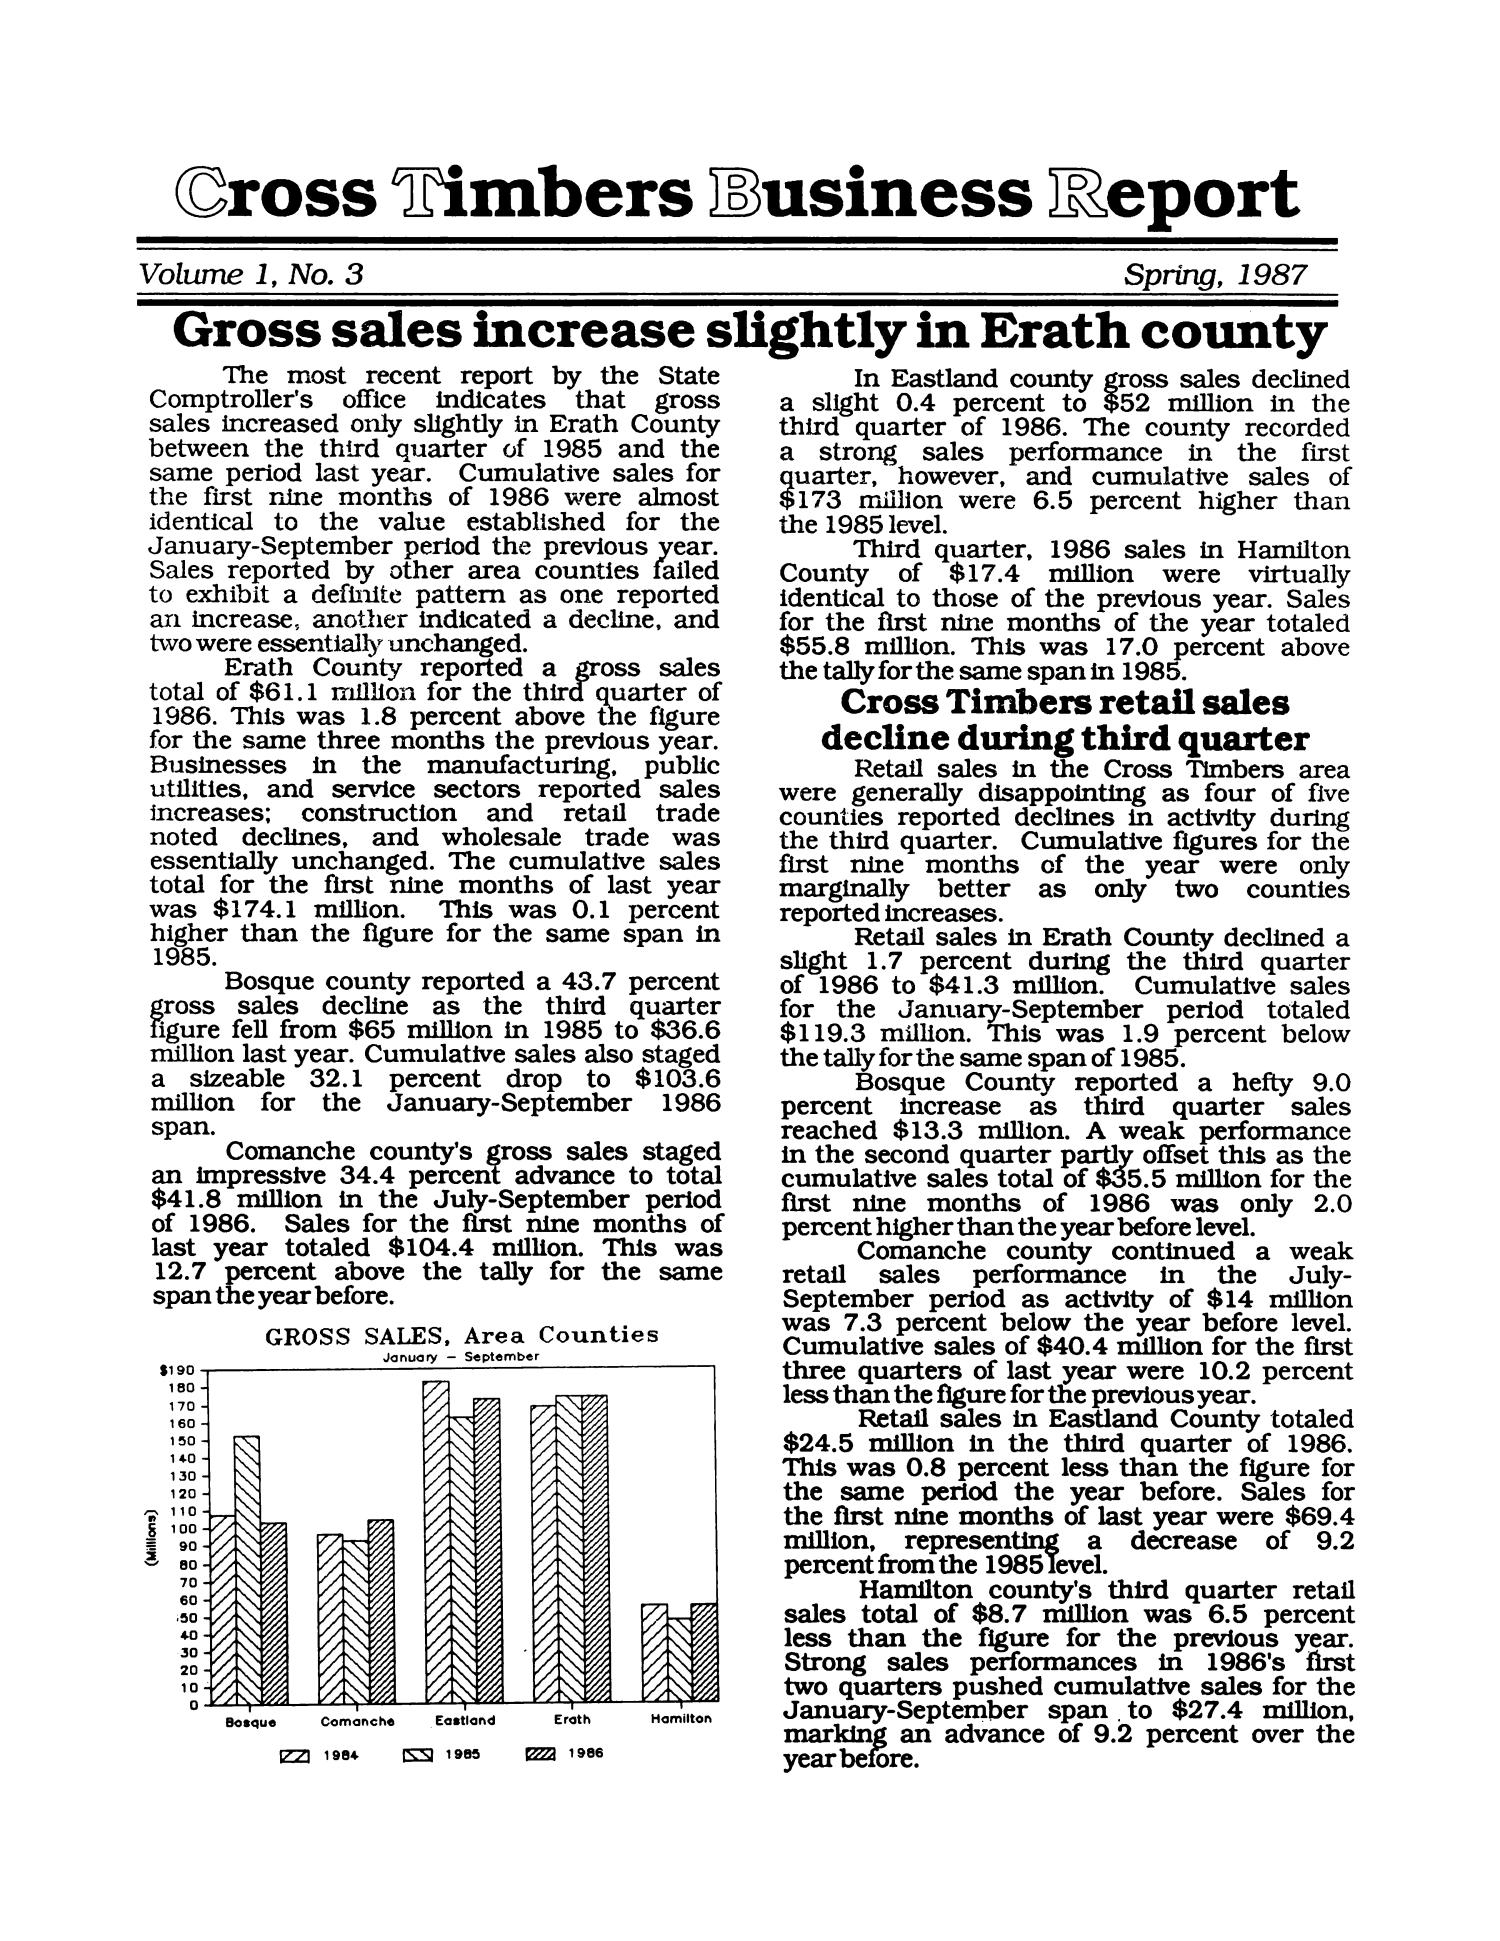 Cross Timbers Business Report, Volume 1, Number 3, Spring 1987                                                                                                      1